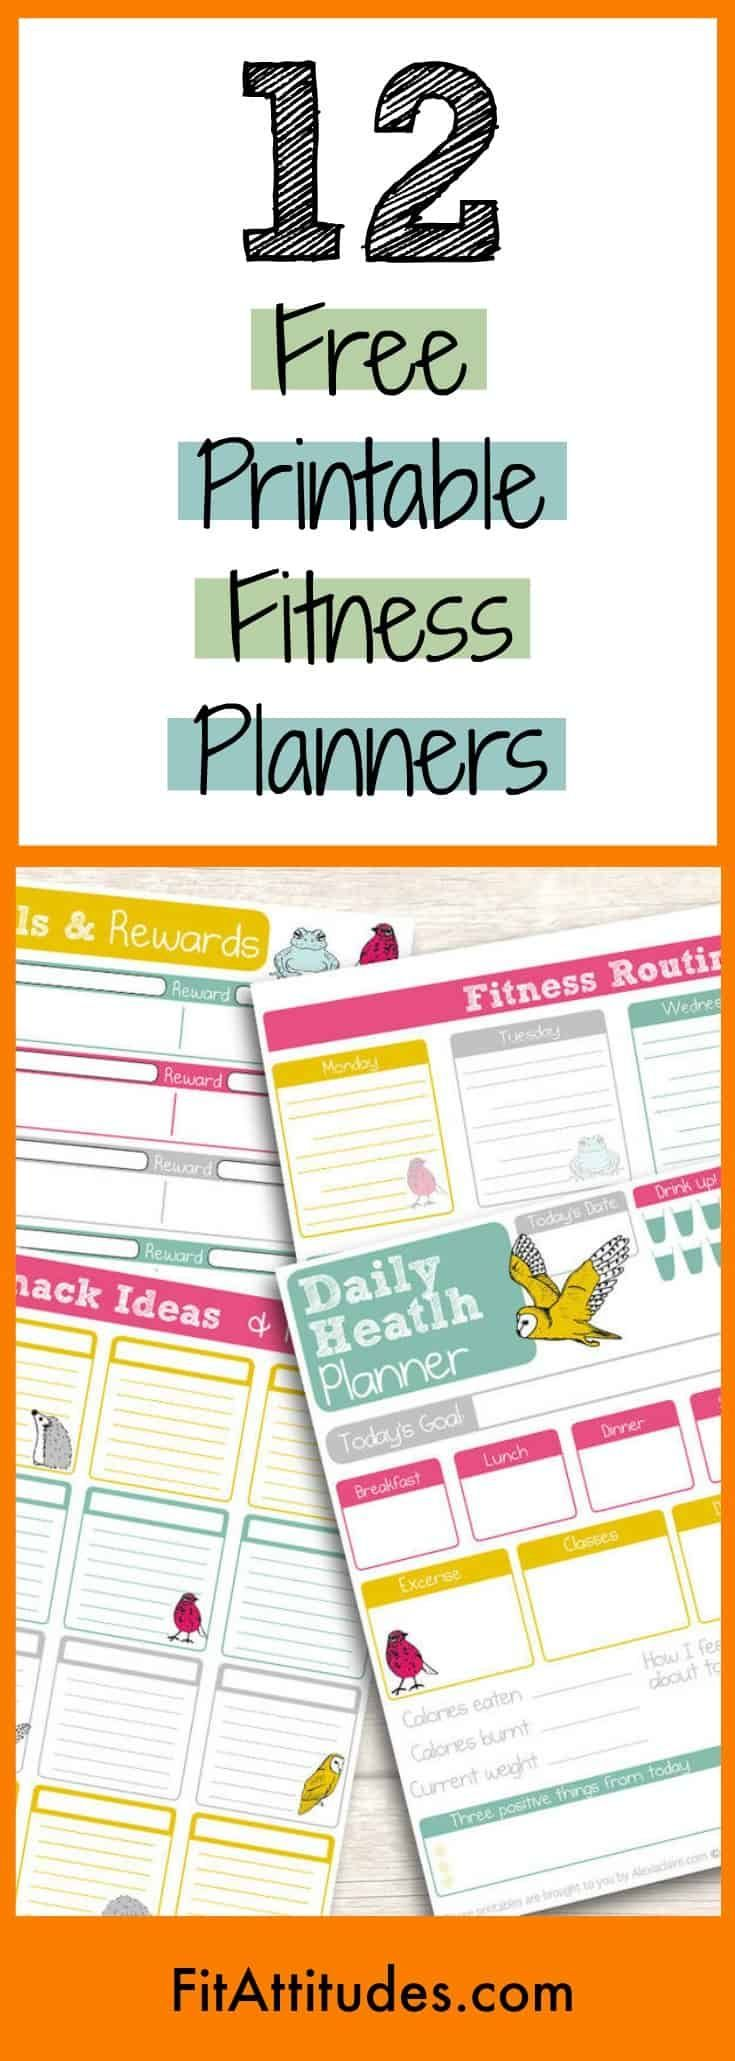 Free Printable Fitness Planners | Fit Attitudes | 21 Day Planners -  - #Attitudes #Day #Fit #Fitness...